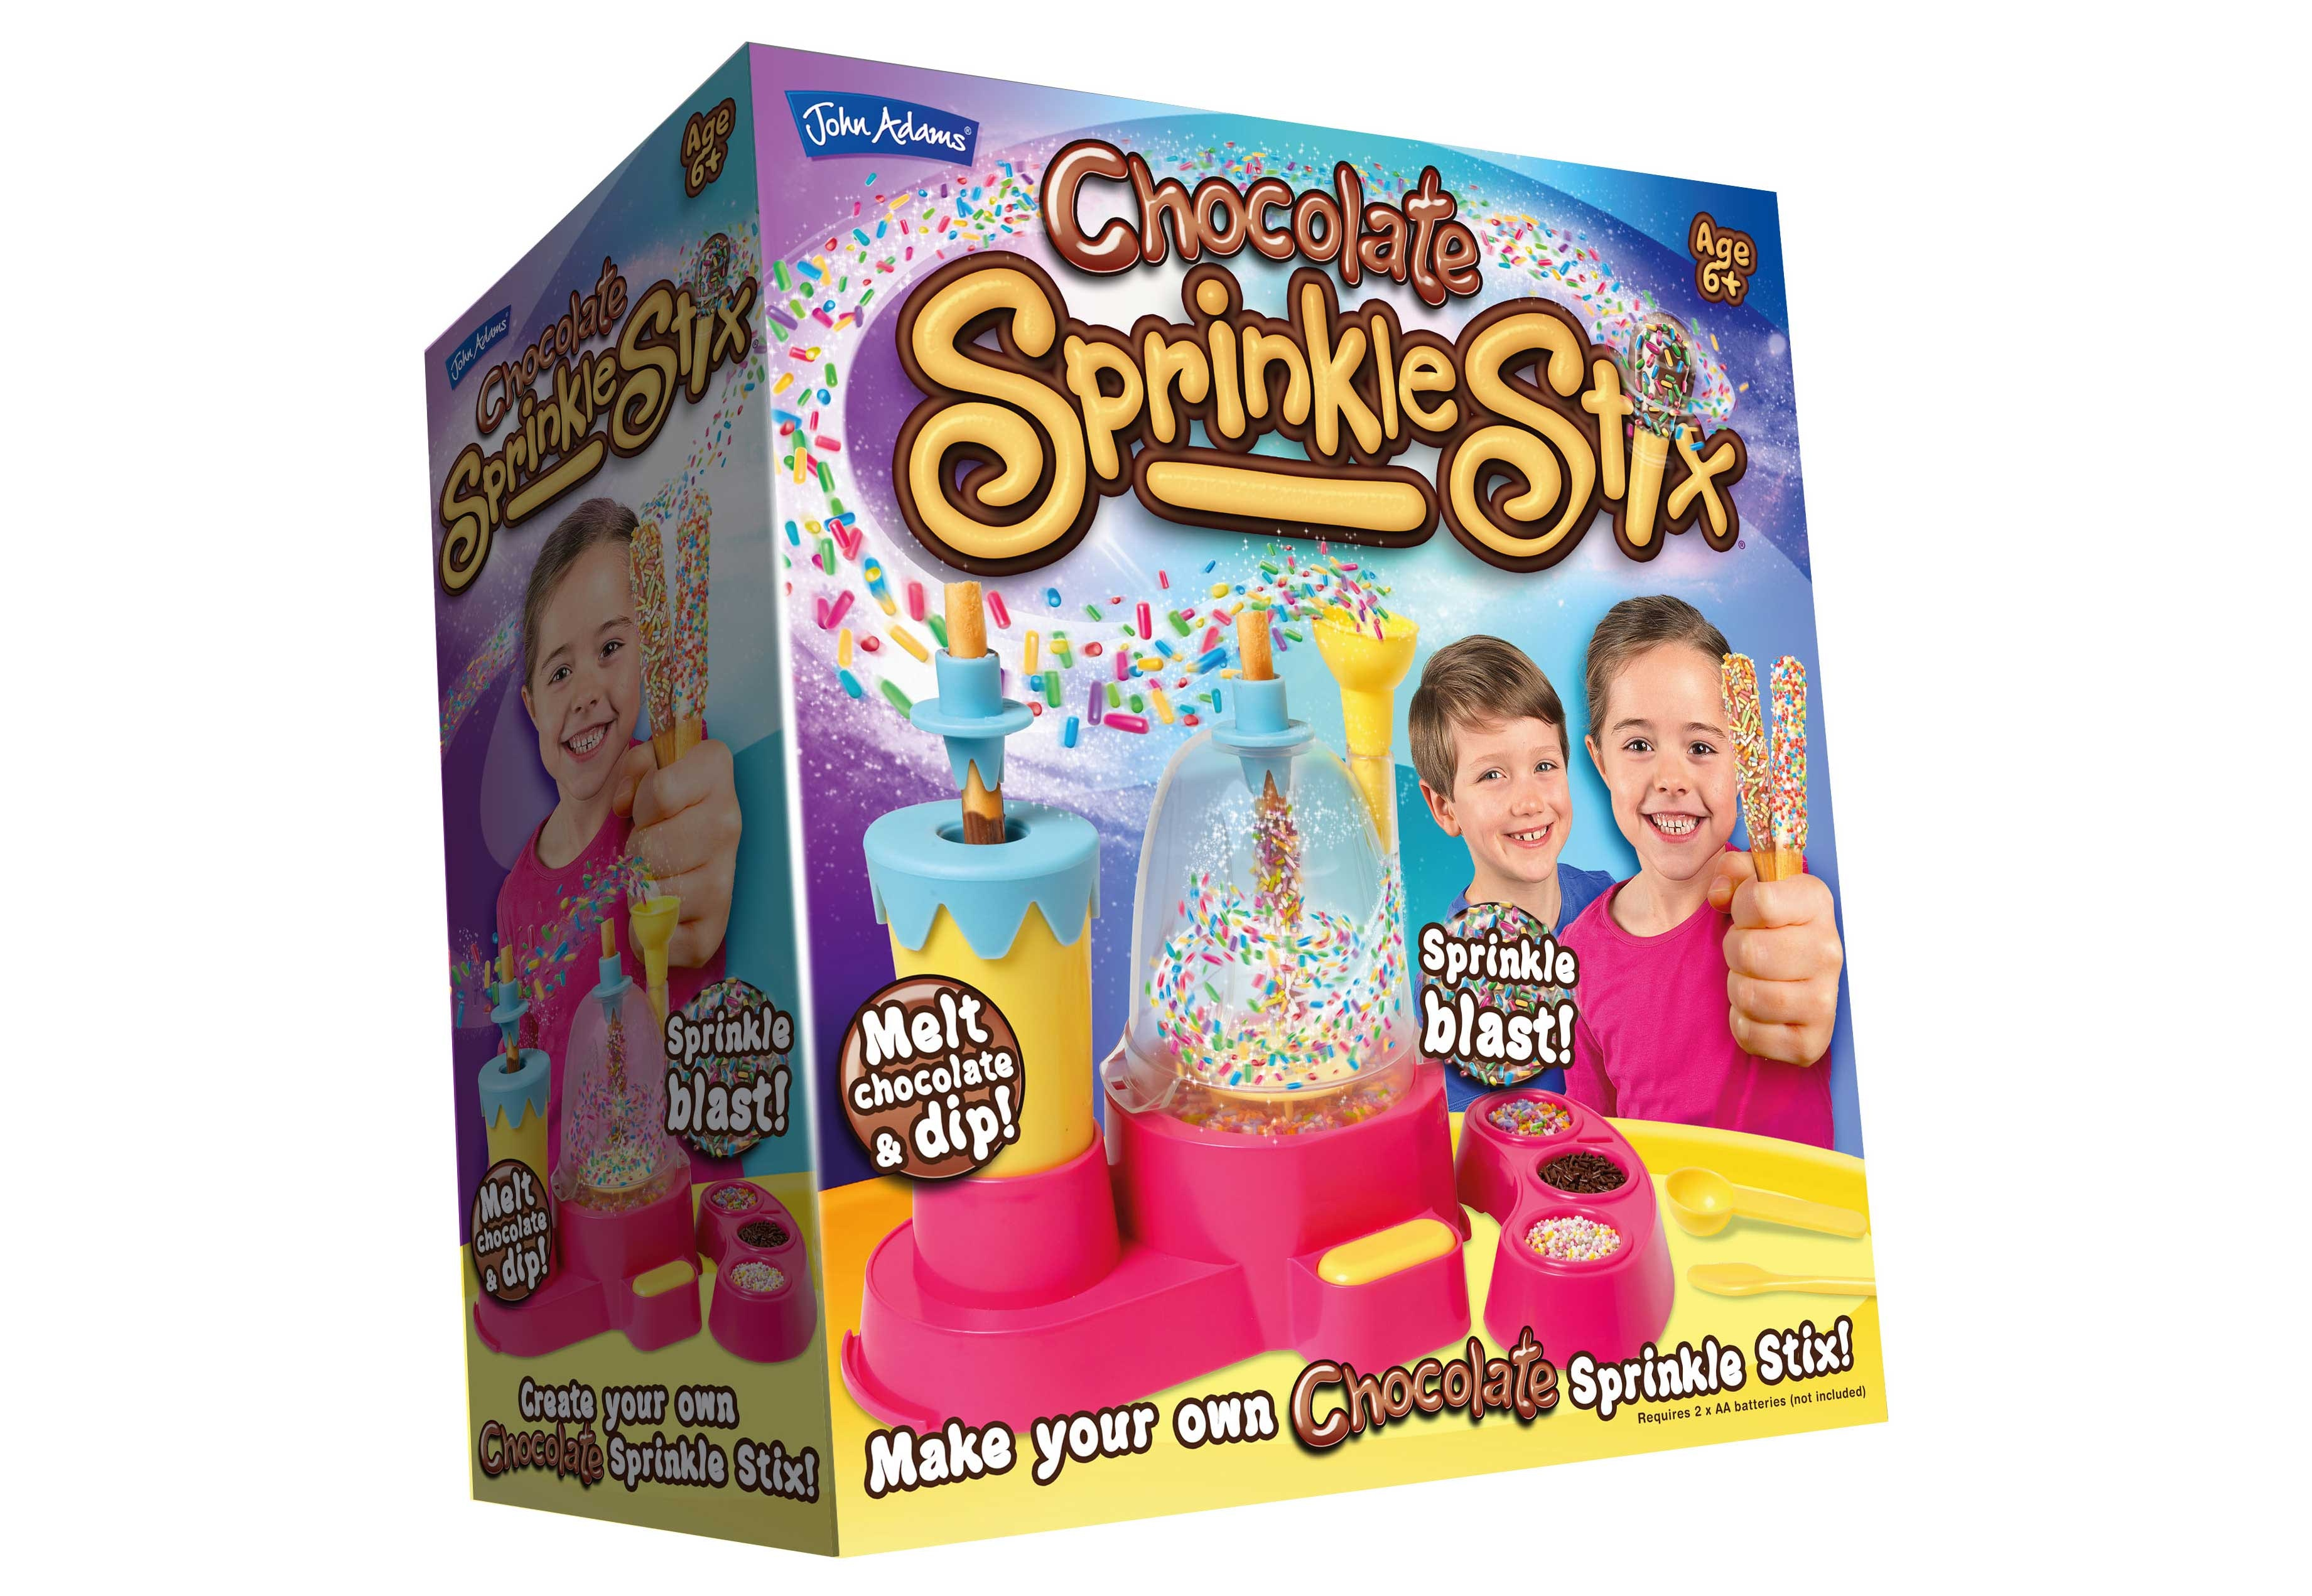 CHOCOLATE SPRINKLE STIX AND CHOCOLATE LOLLY MAKER PRIZES sweepstakes